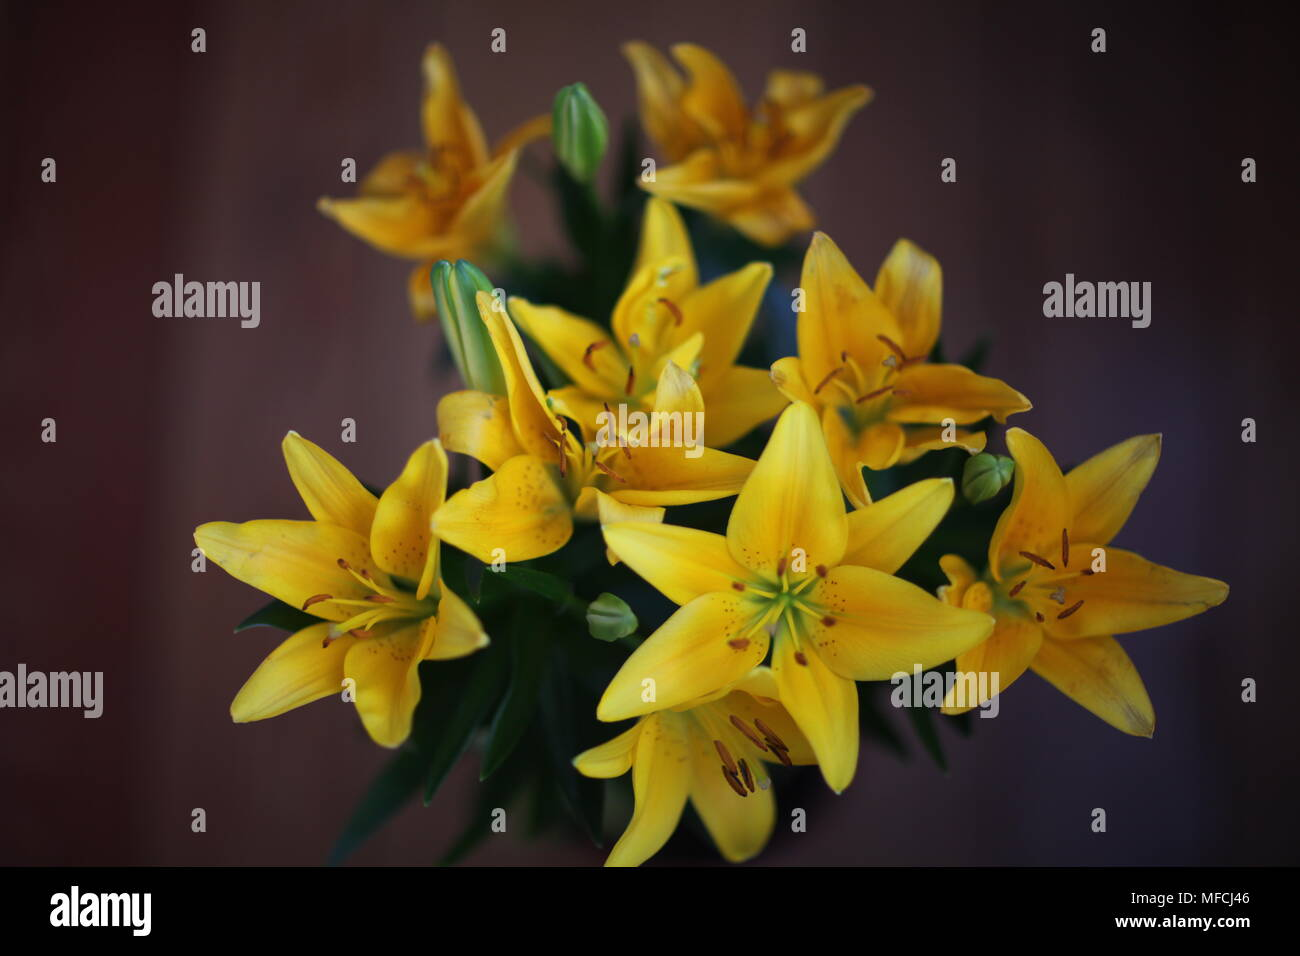 Bouquet of bright yellow flowers of lilies on a dark background bouquet of bright yellow flowers of lilies on a dark background izmirmasajfo